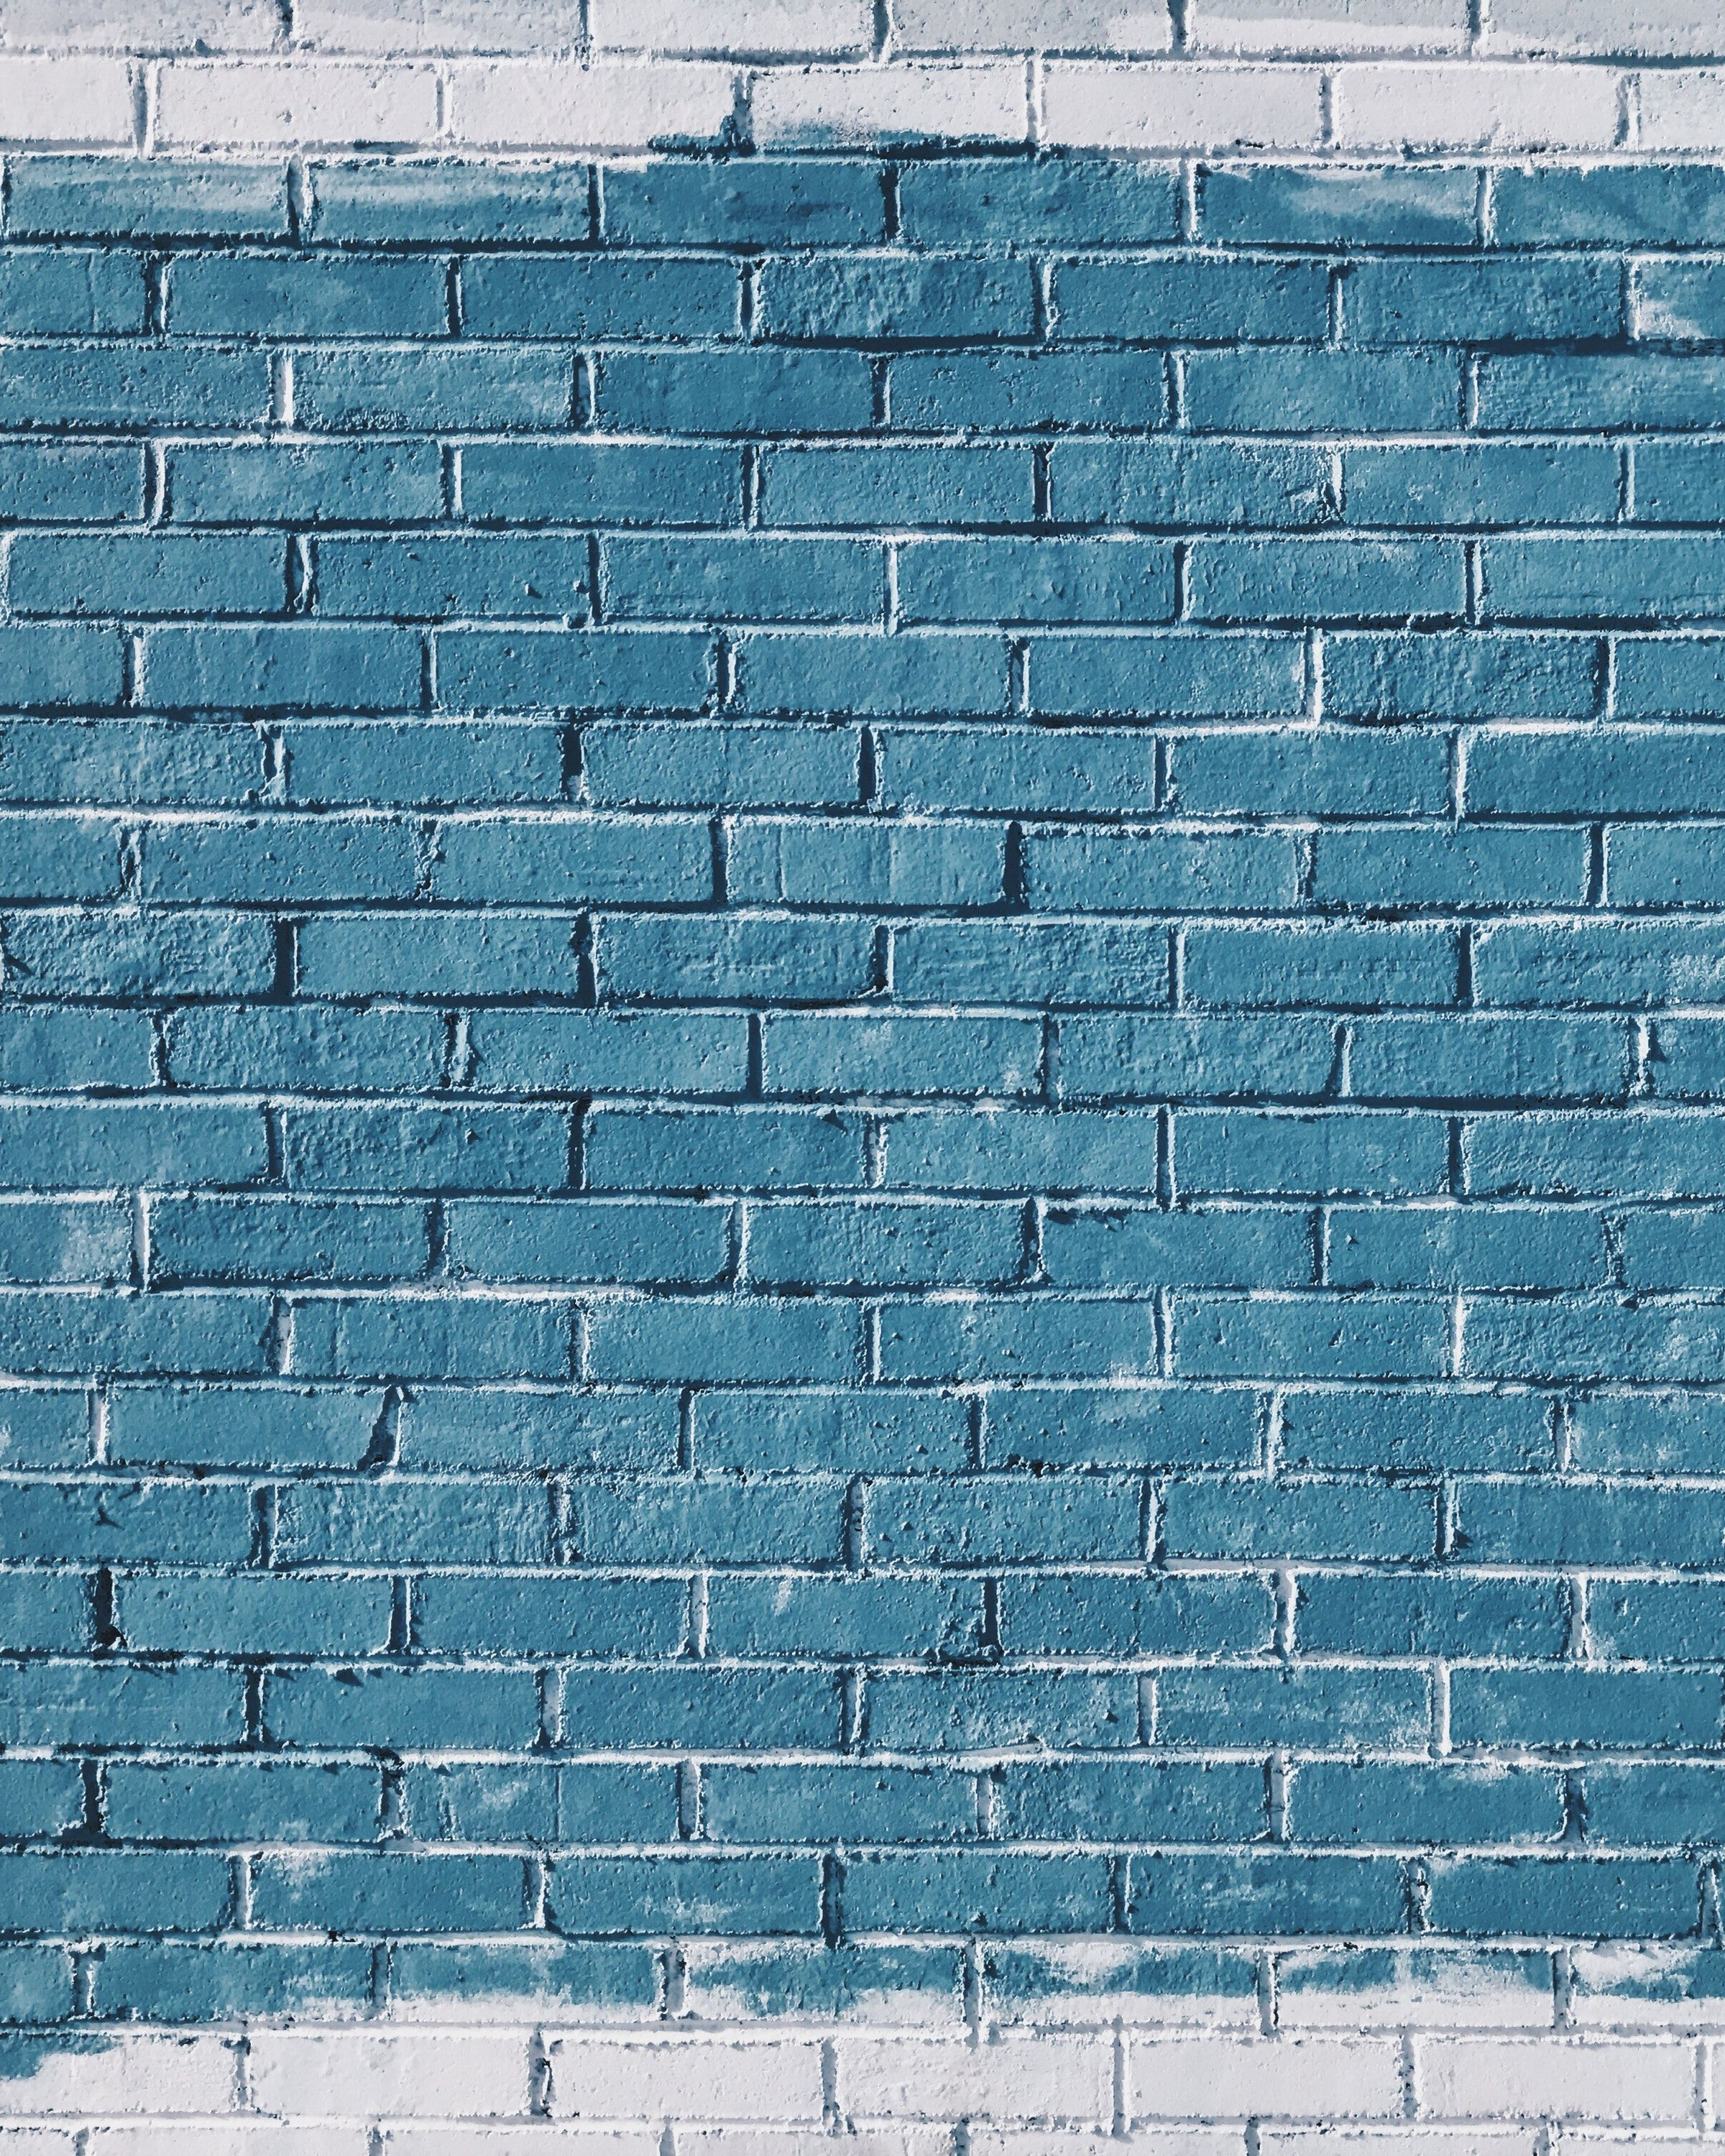 Illustrations Brick Color Colour Wall Brickwall Wallpapers Hd 4k Background For Android Wall Wallpaper Brick Backdrops 480x800 Wallpaper